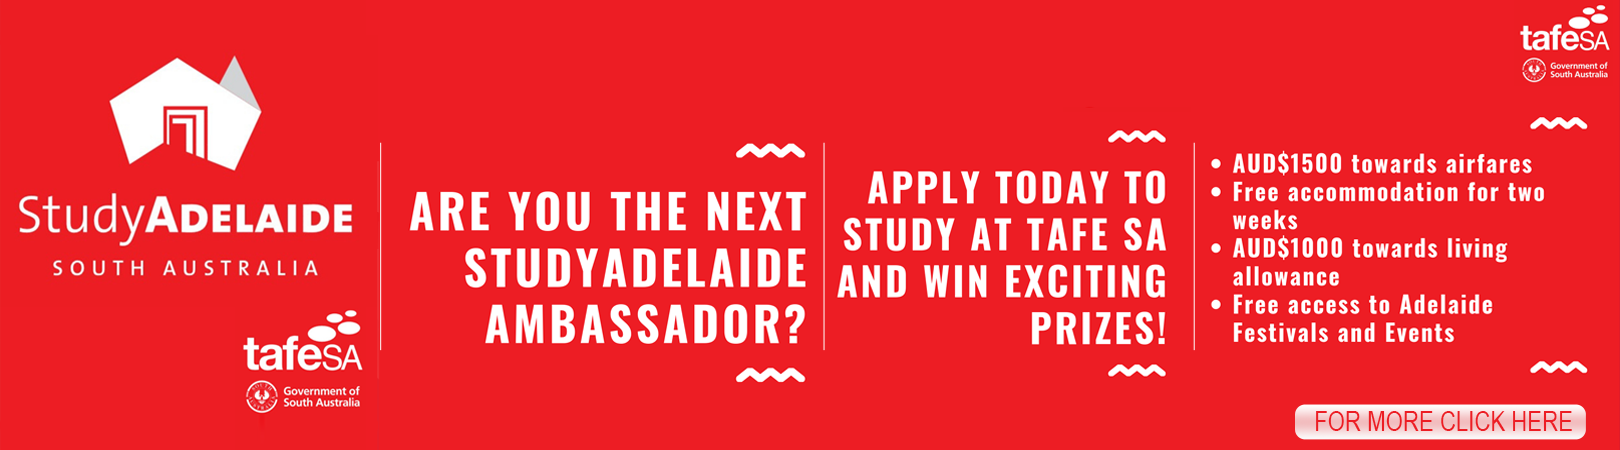 If you are planning to start studying at TAFE SA from July 2019, enter today to win an exciting student package worth AUD$4000